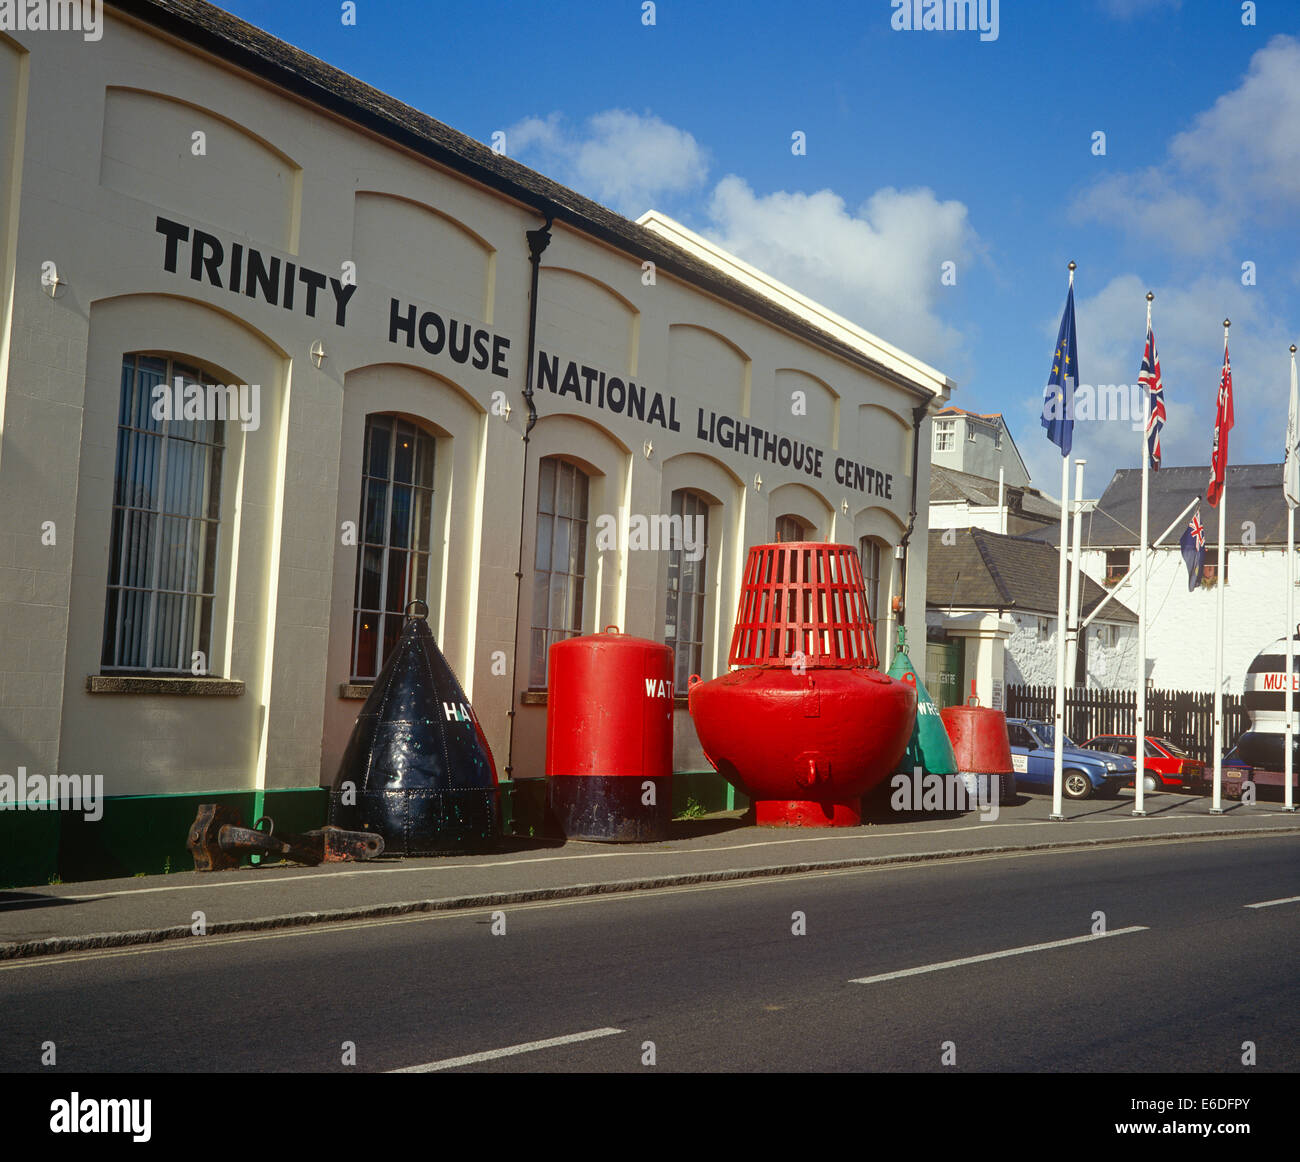 Trinity House Lighthouse Centre Nacional Penzance Cornwall UK Imagen De Stock